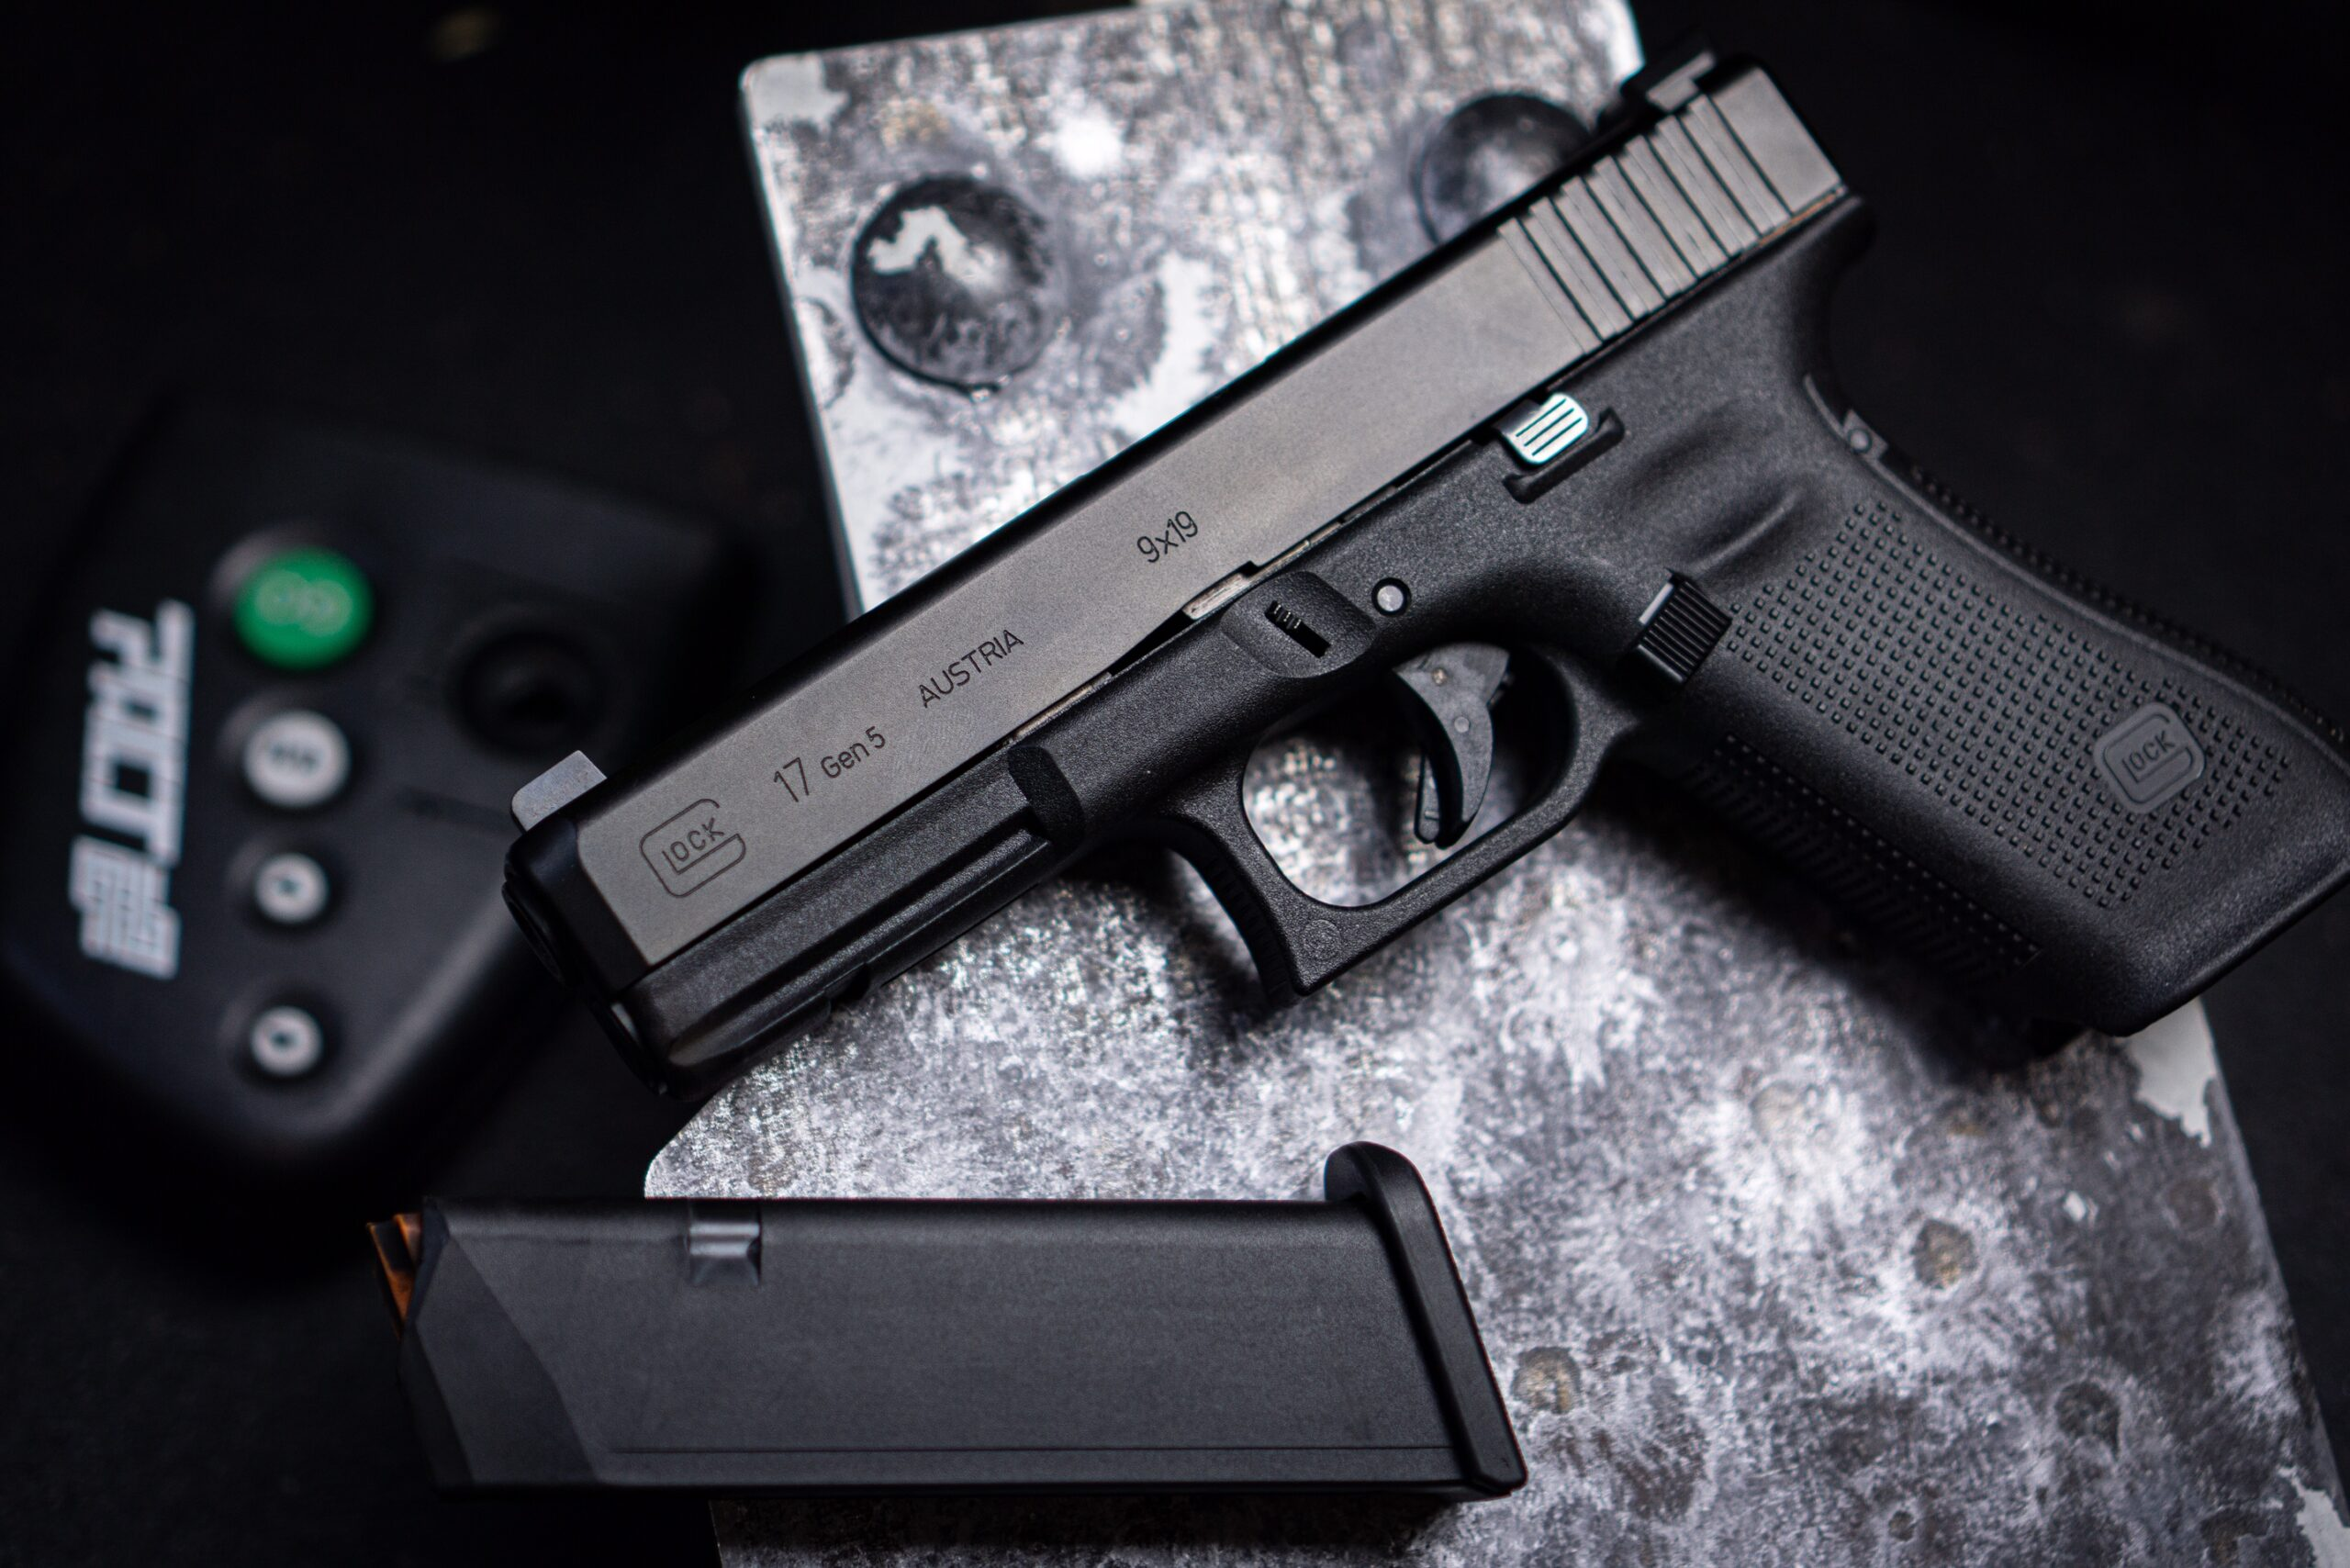 Glock 17 Gen-5 Displayed with shot timer and magazine